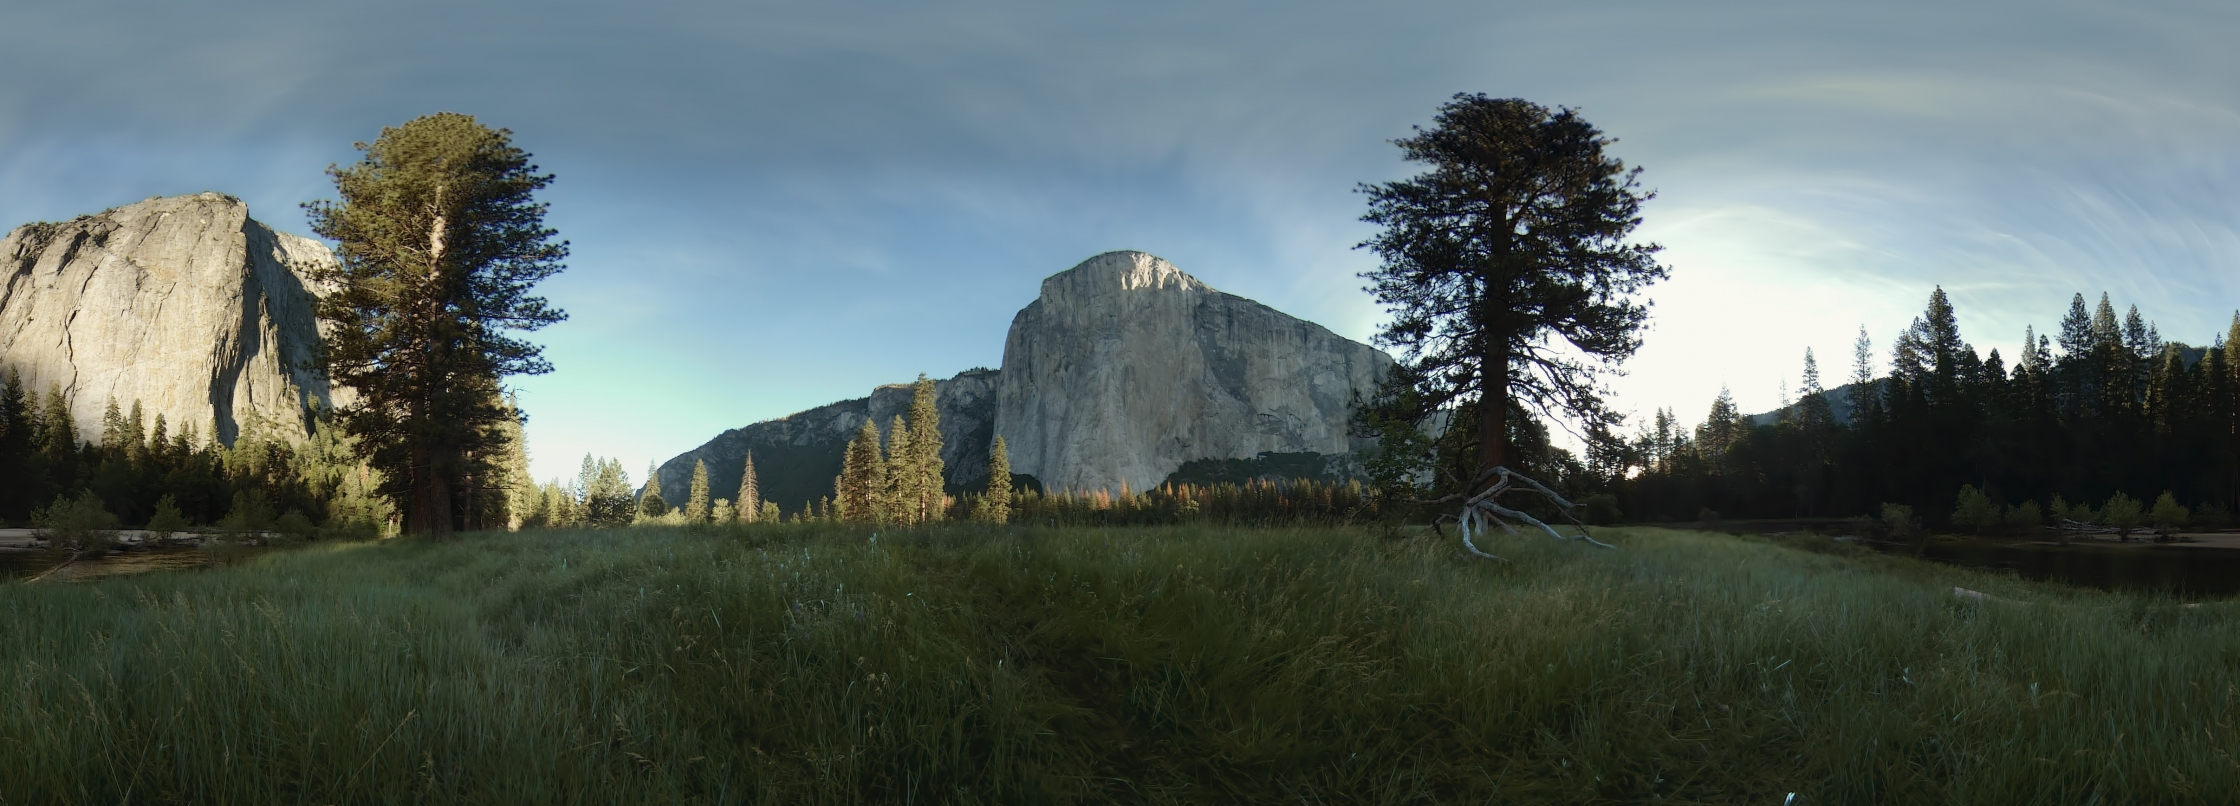 El Cap Meadow in Yosemite